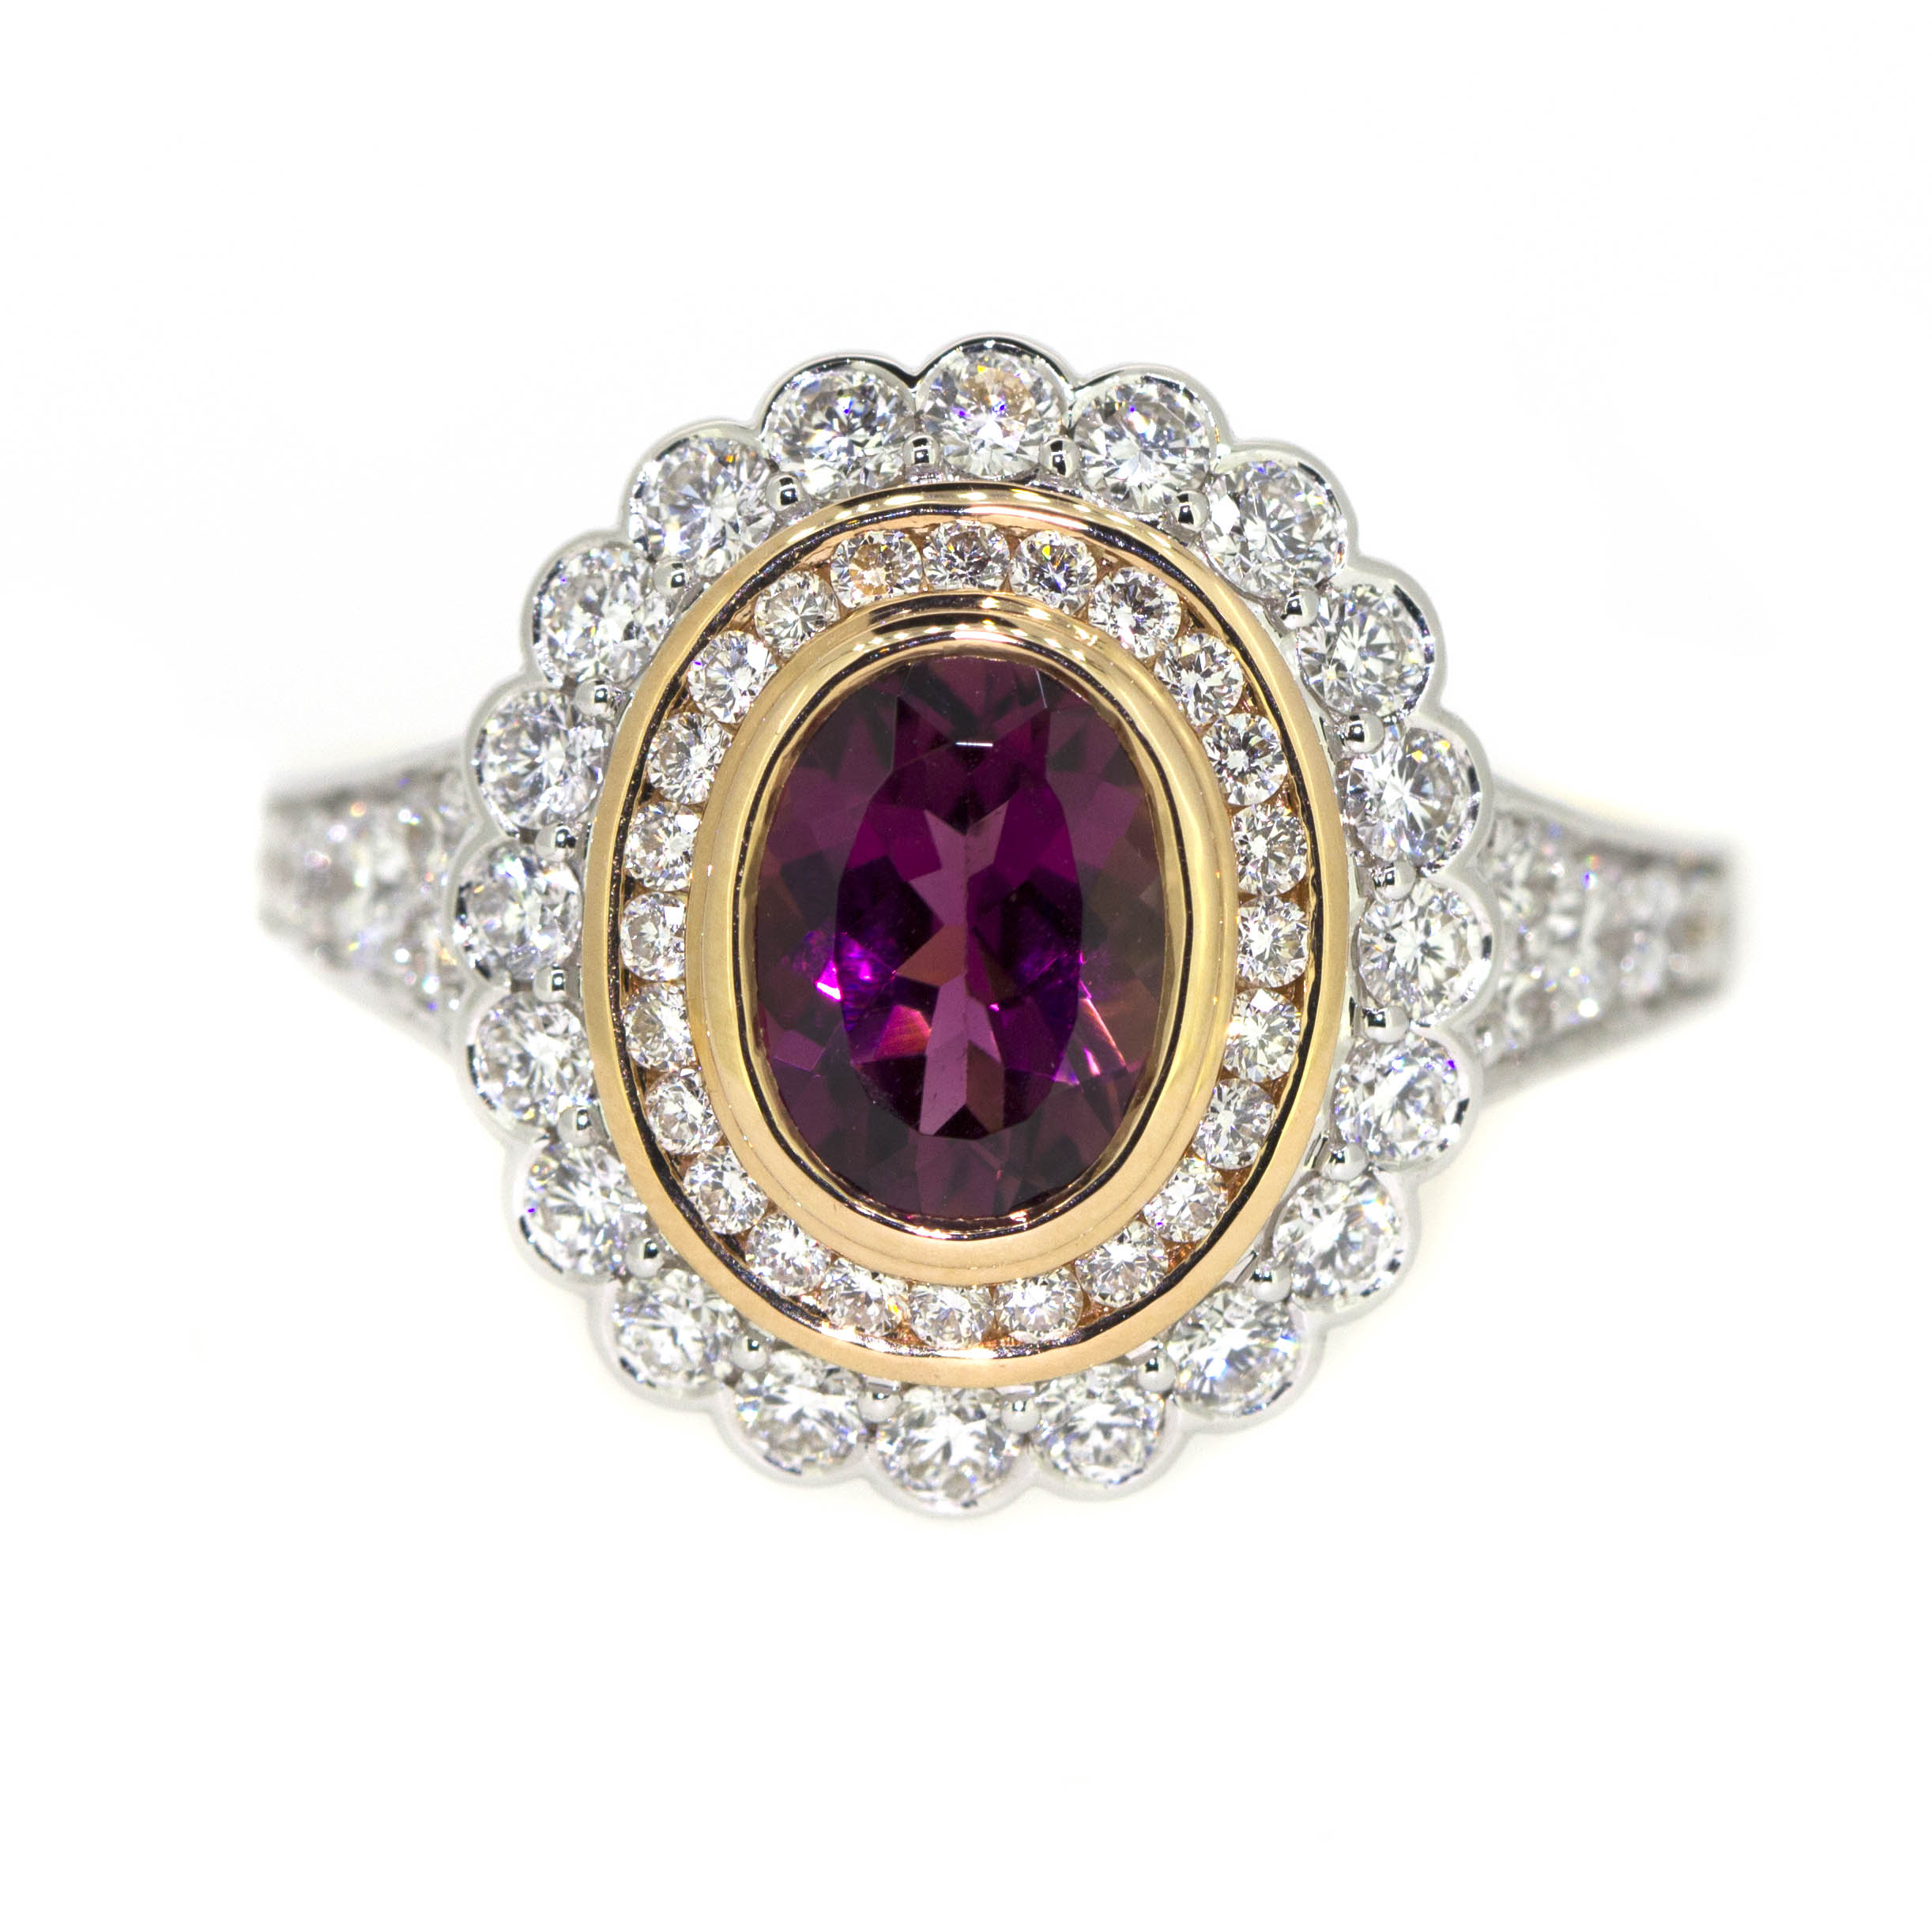 18ct White, Rose & Yellow Gold, 1.22ct Pink Tourmaline & 54 Diamonds equaling .90ct.